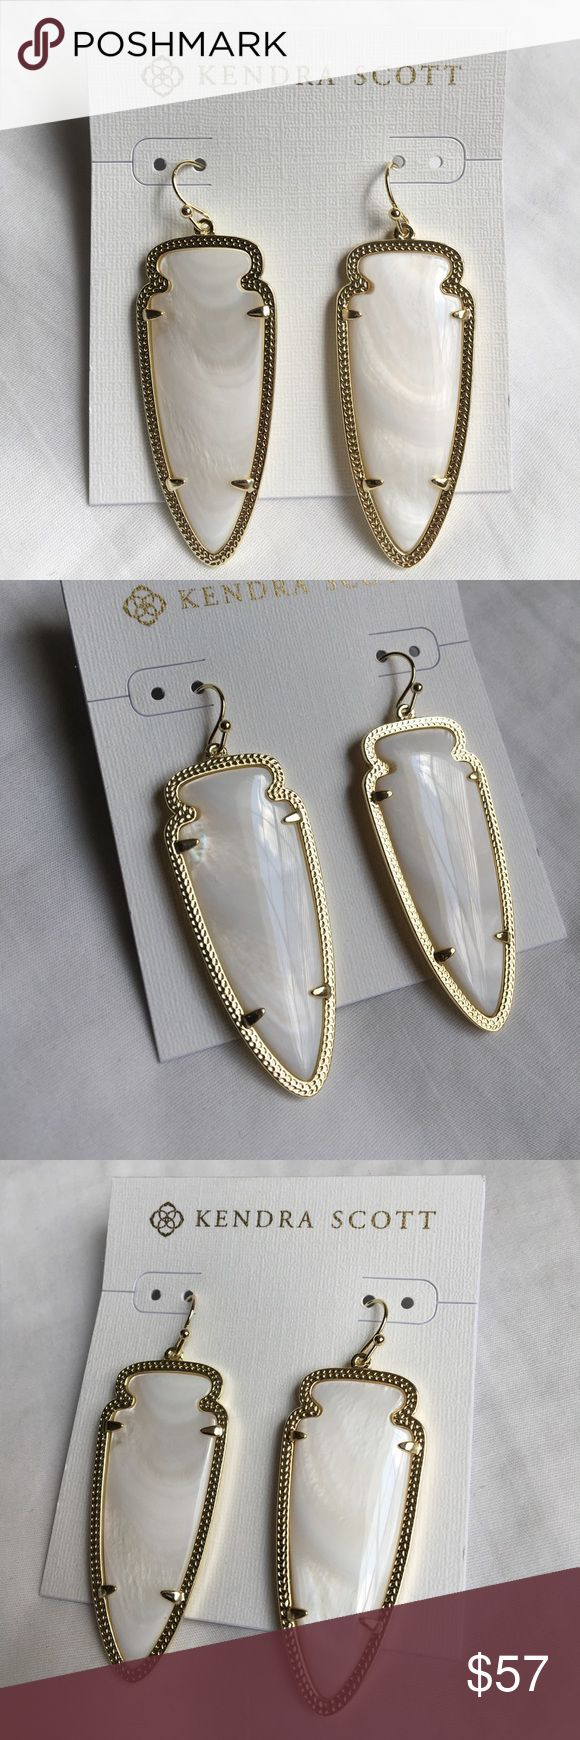 Kendra Scott Skylar Gold Earrings in MOP Gorgeous pair of Kendra Scott Skylar gold earrings in mother of pearl. These are brand new and never been worn - in perfect condition. Please check photos for closeup and measurement. Comes with KS jewelry pouch. Kendra Scott Jewelry Earrings